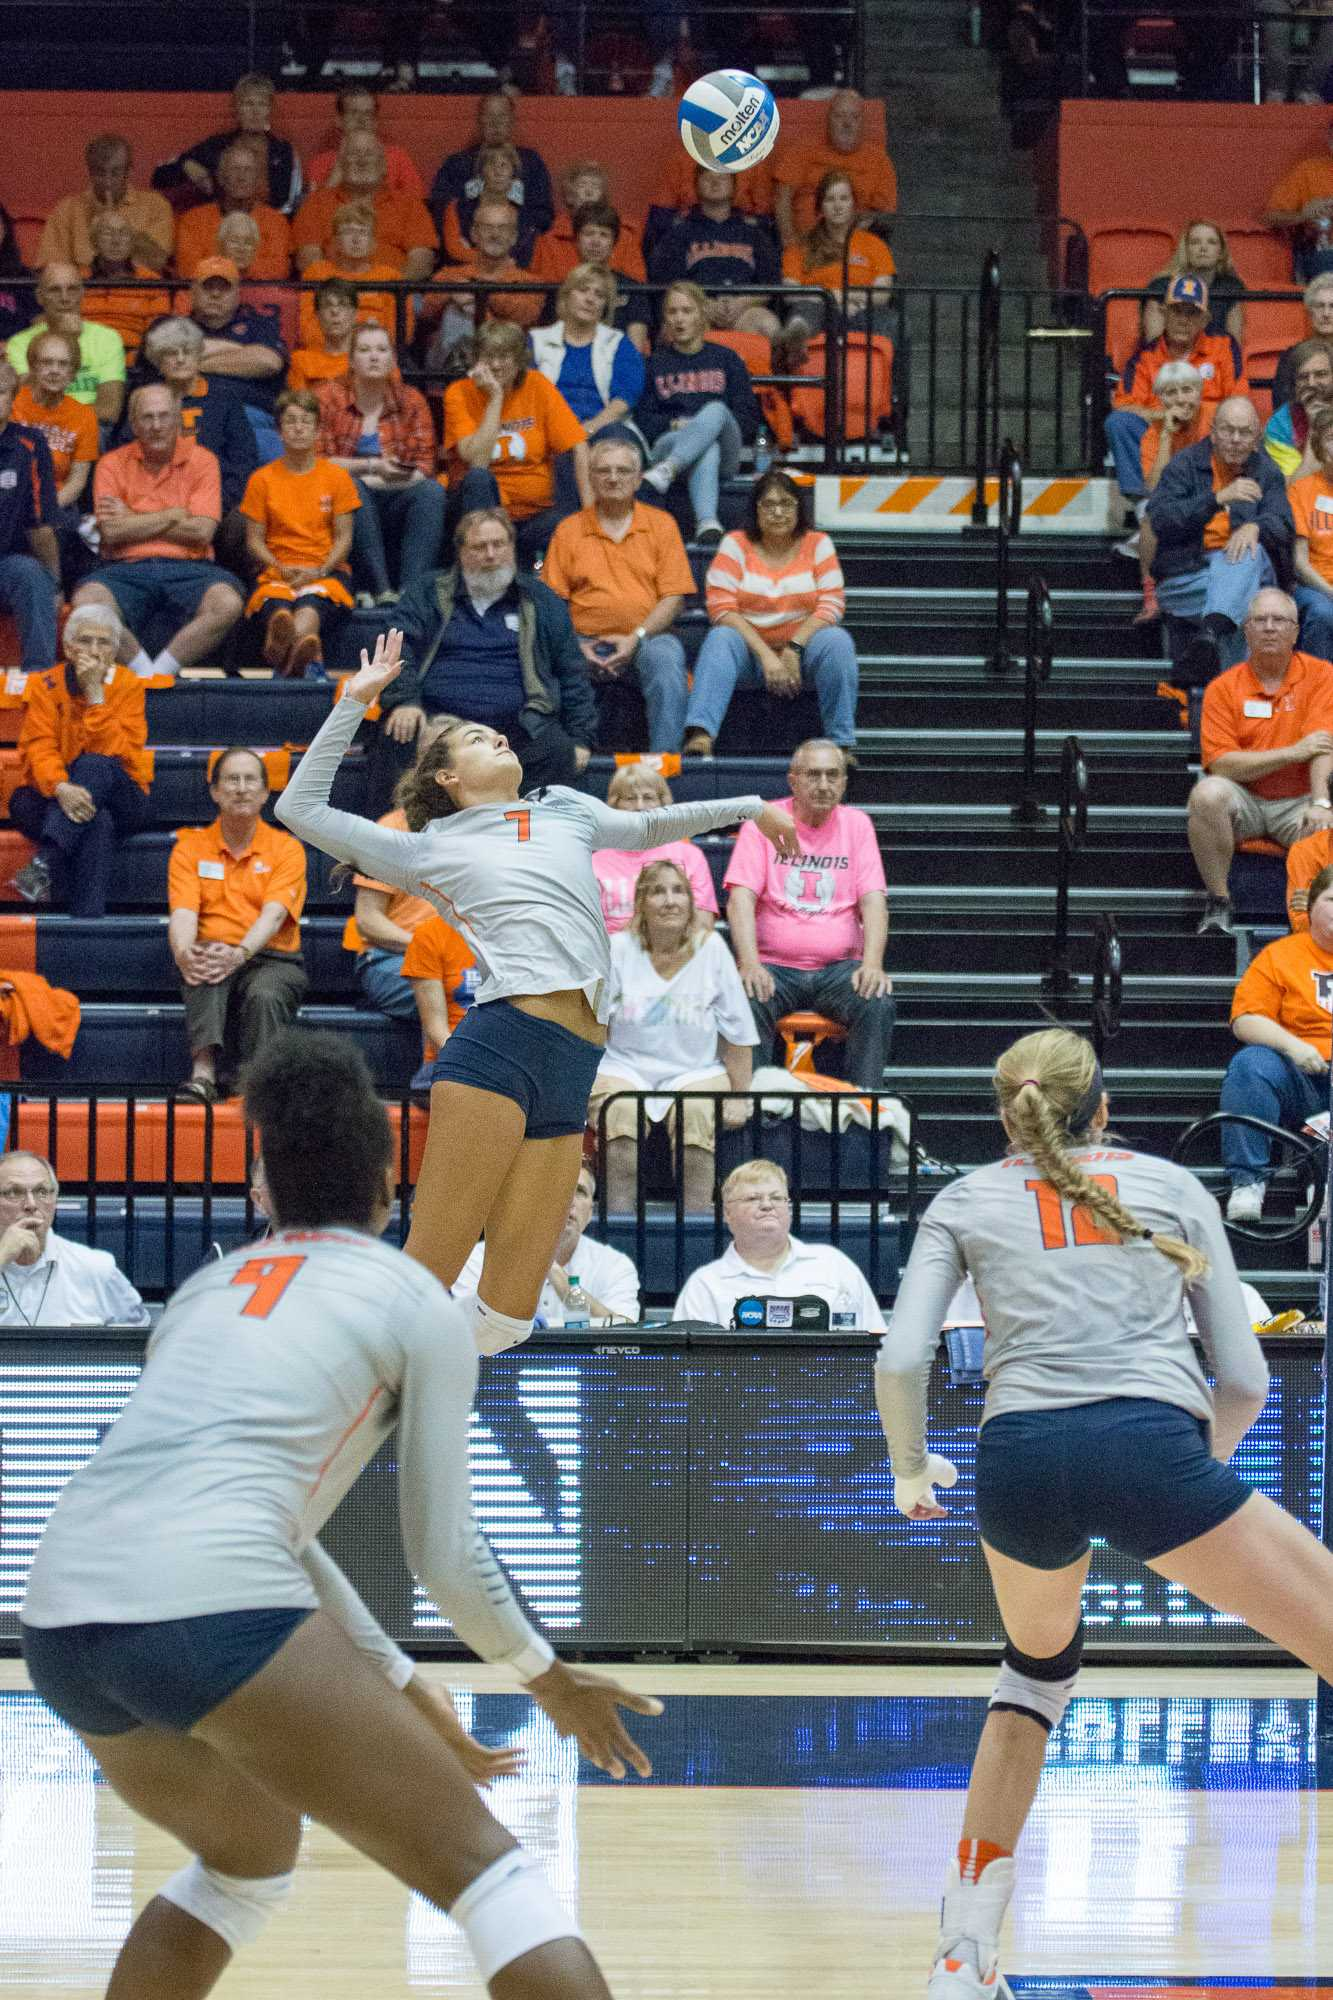 Illinois' Jacqueline Quade gets ready to hit the ball during the match against Northwestern at Huff Hall on Saturday, October 15. The Illini won 3-0.